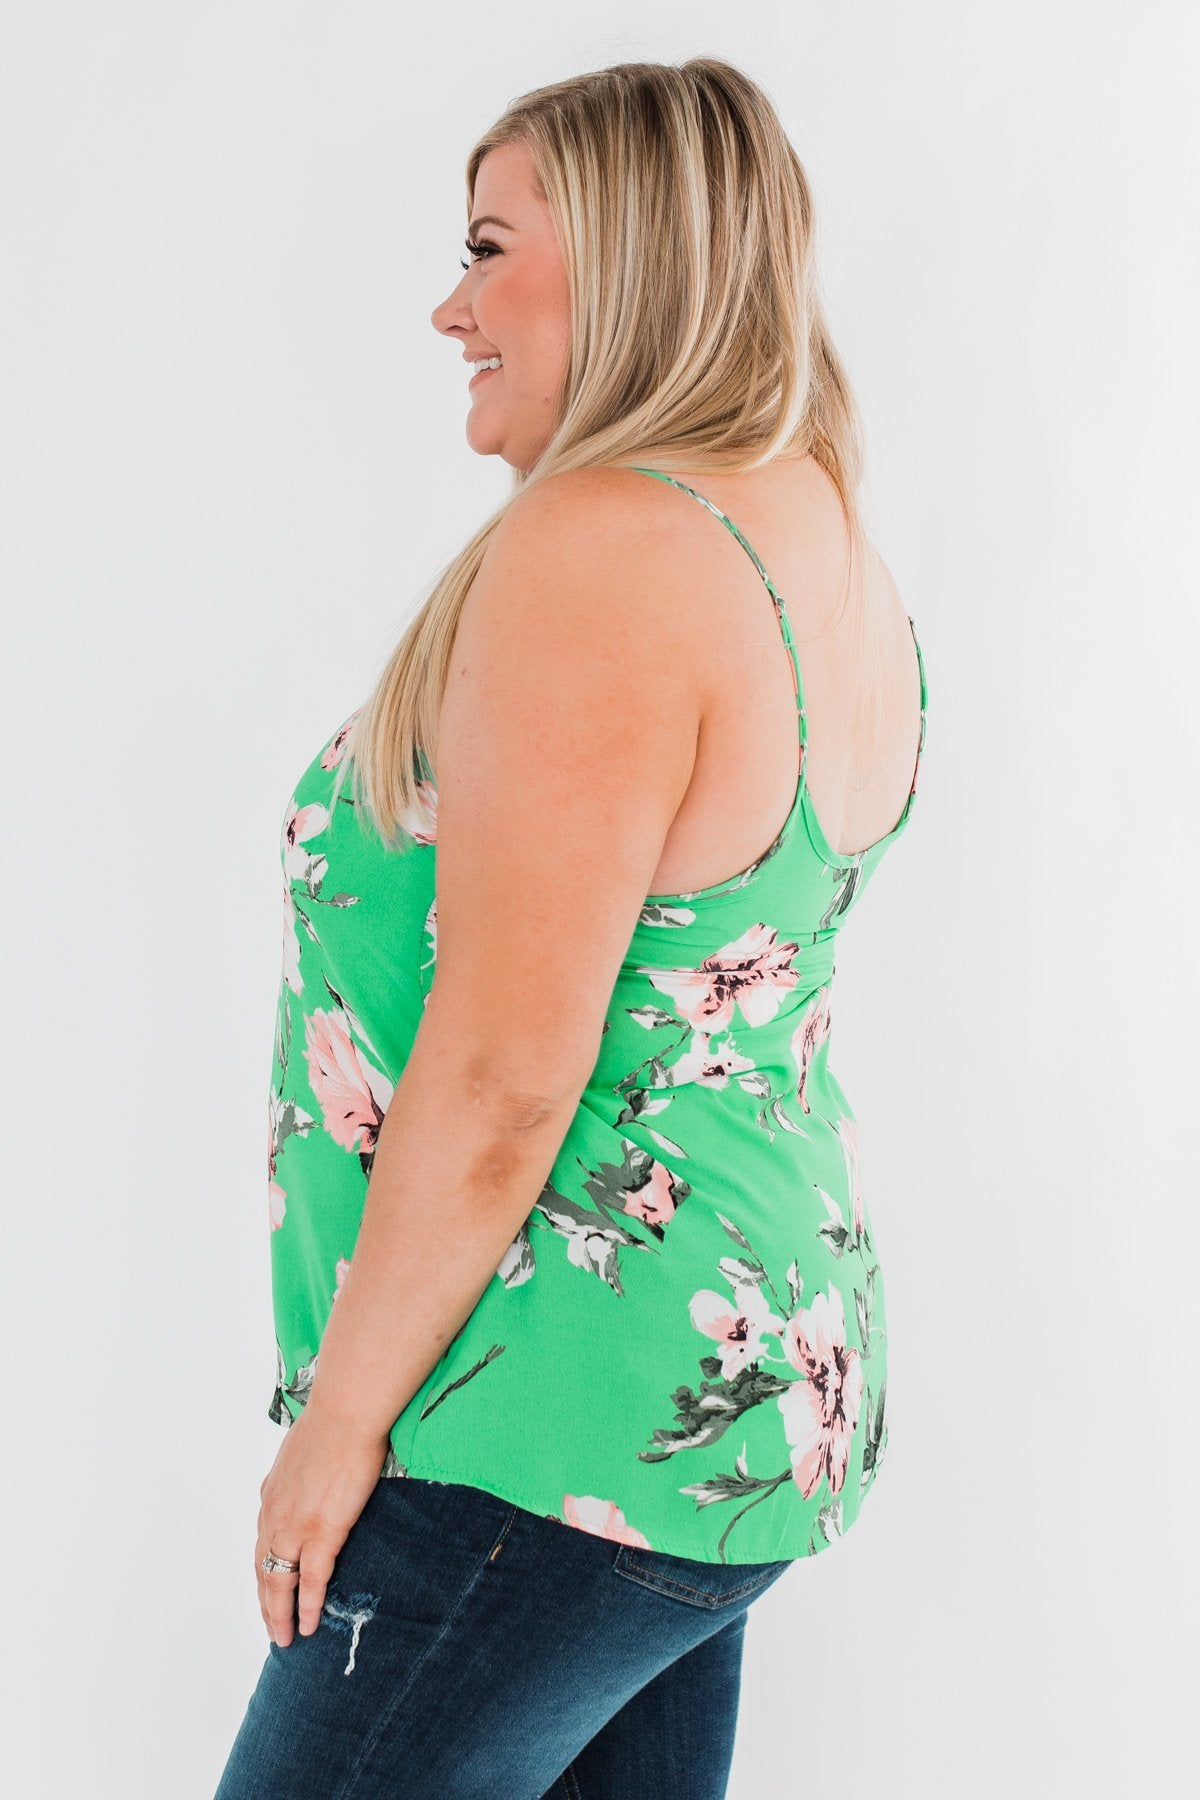 Breathtaking in Floral Tank Top- Emerald Green